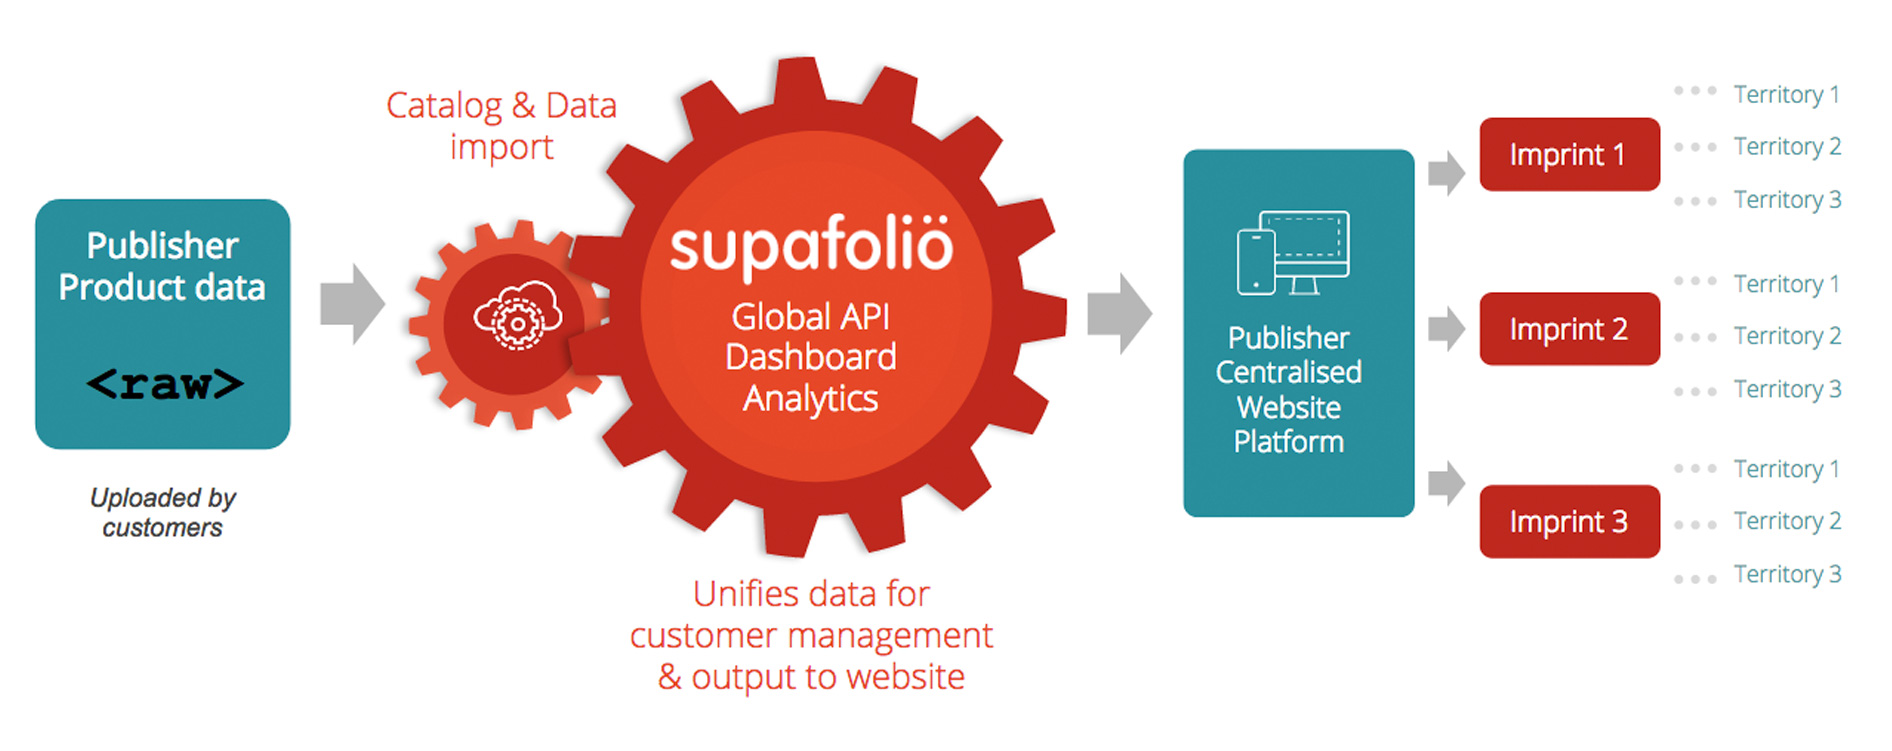 Supadu | Supafolio API is a powerful site search and metadata management platform for publishers & university presses